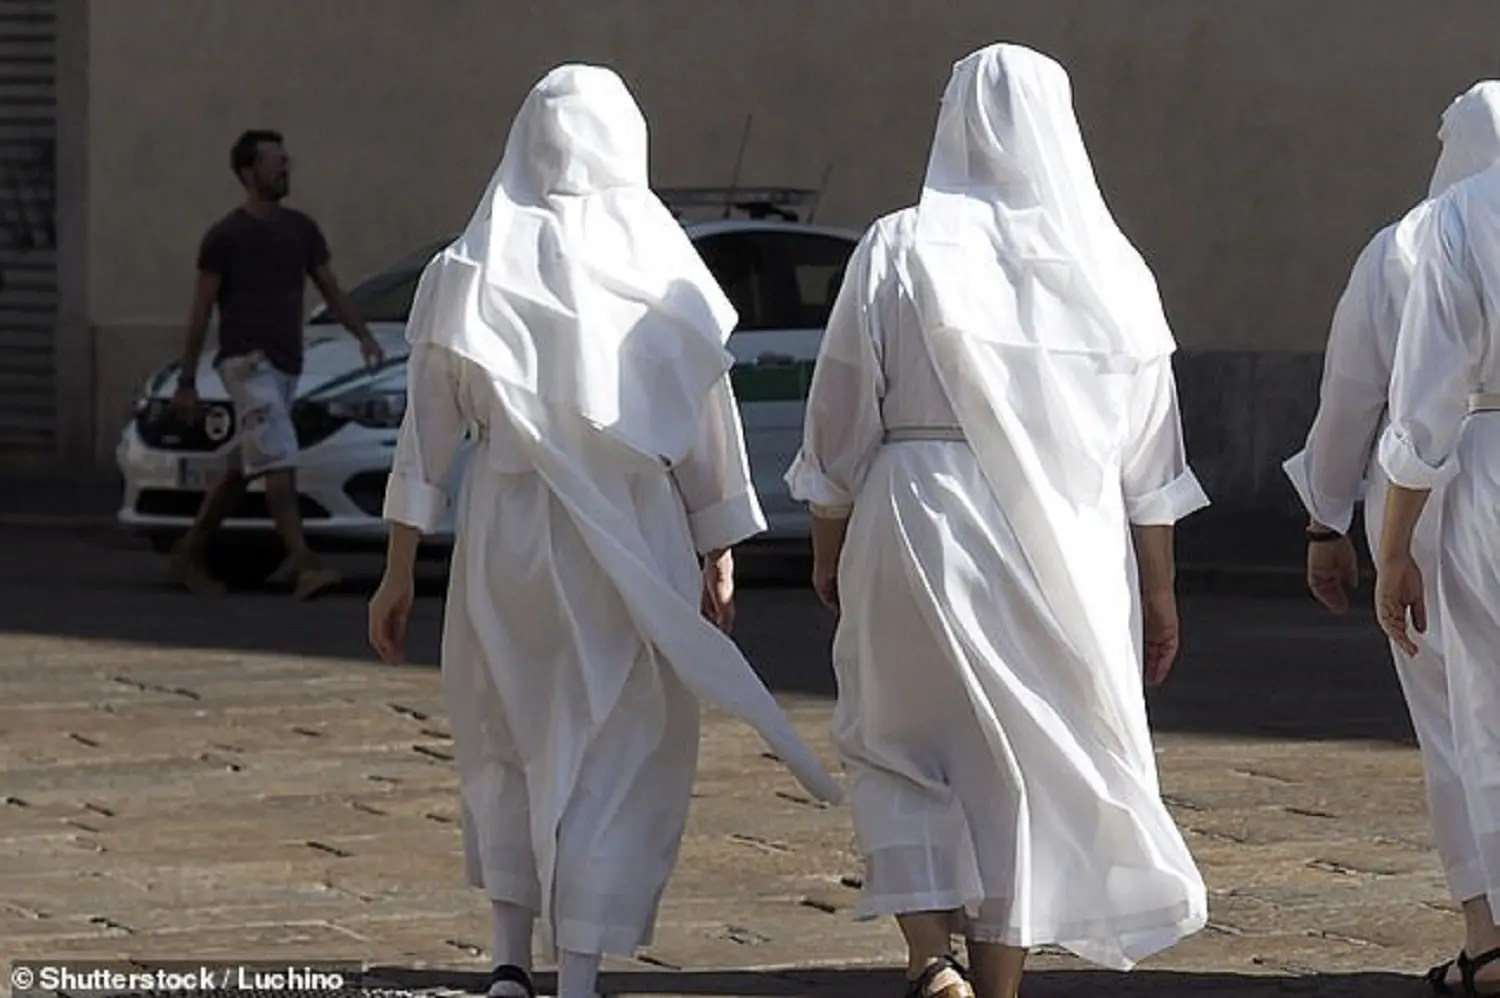 Two Nuns return to Italy pregnant after missionary trip in Africa